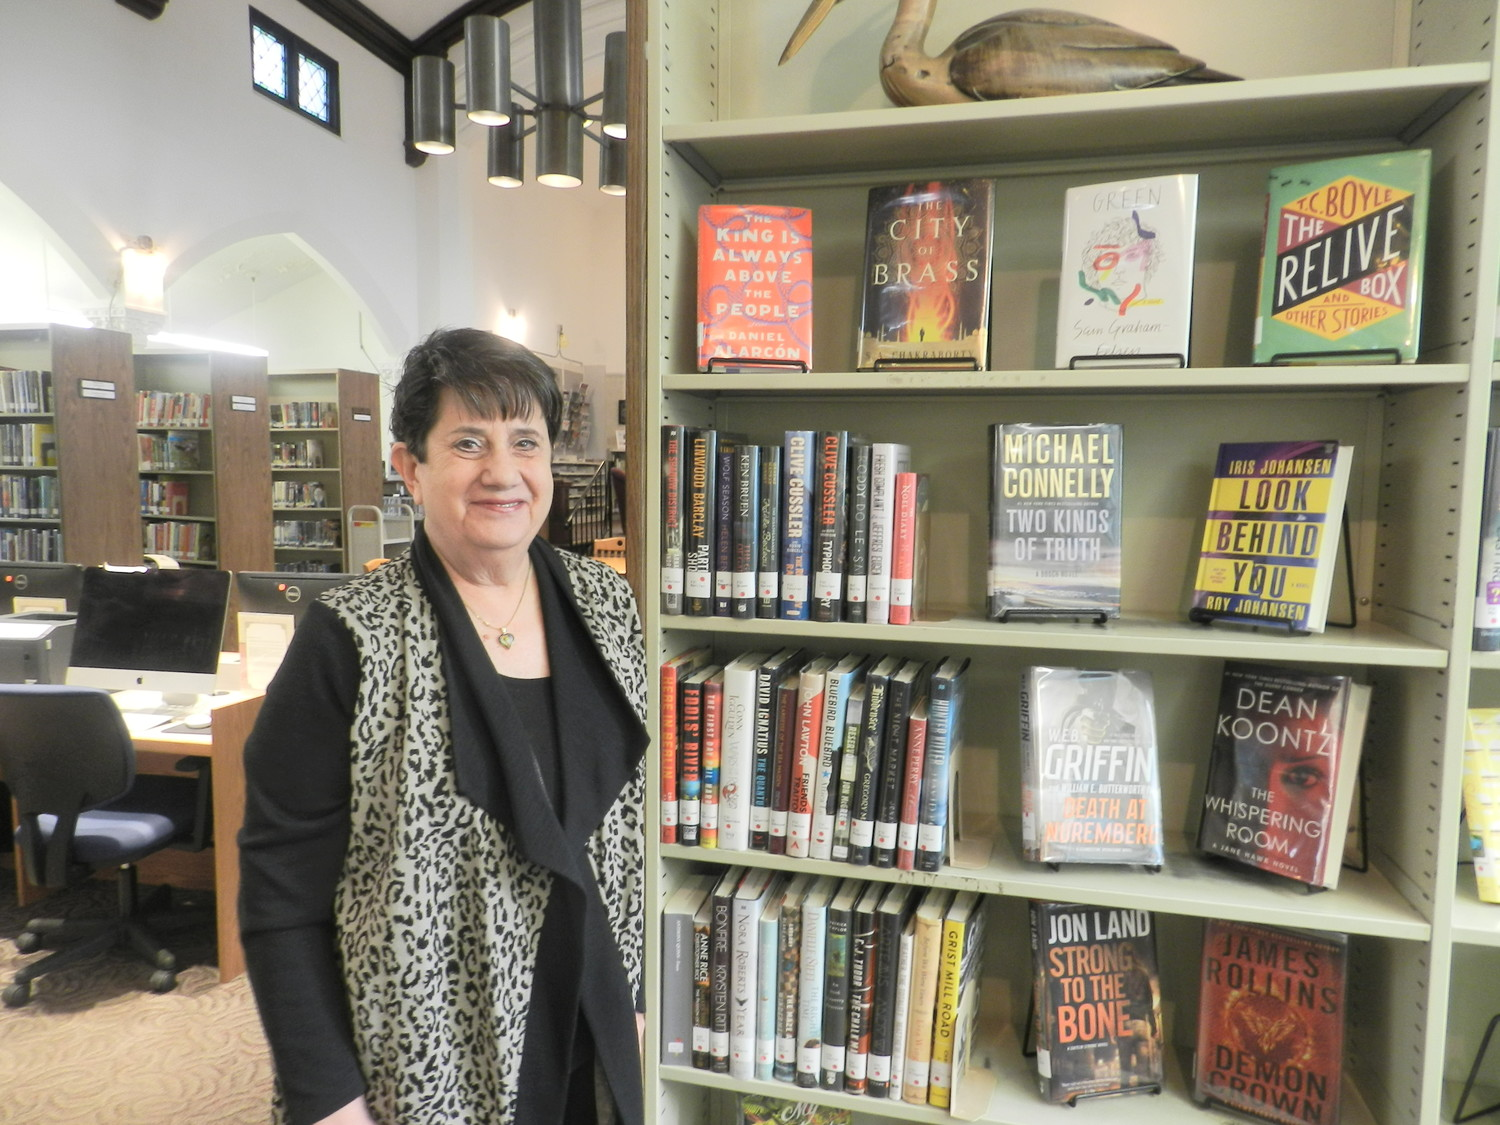 Nevens began her career at the Great Neck Library, where she worked for 30 years, but admitted that she found greater interactions with patrons in the small setting of Sea Cliff's library.